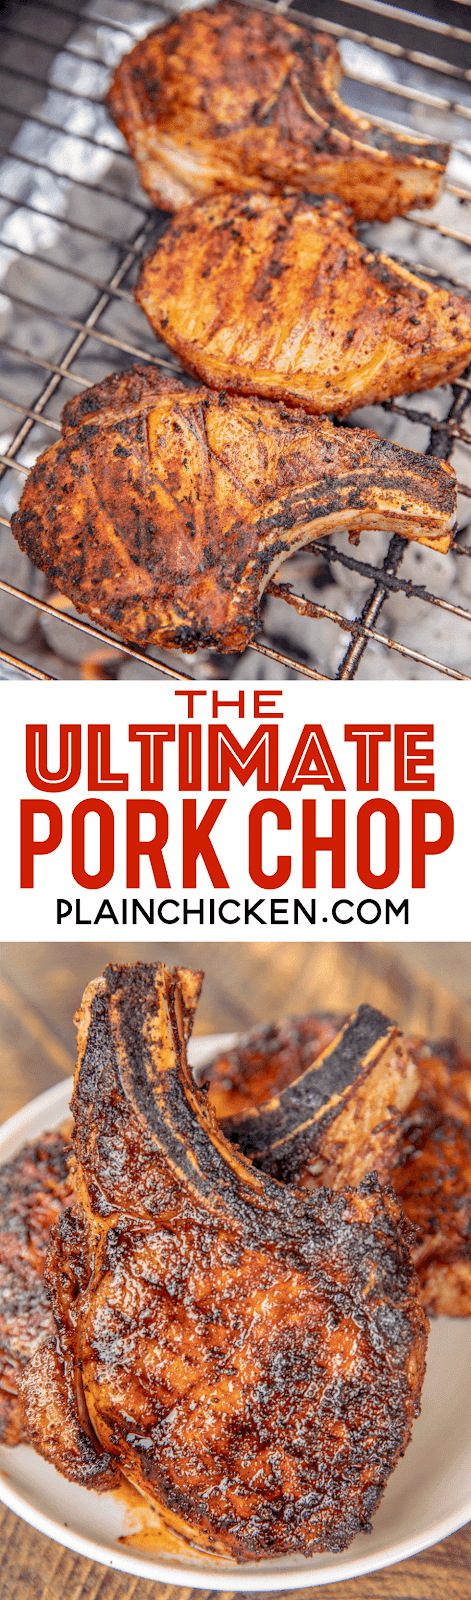 The Ultimate Pork Chops - so tender and juicy. You can cut them with a butter knife!!! Pork chops brined overnight in water, sugar and salt. Rub in a mixture of paprika, garlic powder, onion powder, cumin, dry mustard, pepper and chili powder. Seriously THE BEST!!! Everyone RAVES about these delicious grilled pork chops! #grill #grilling #pork #porkchops